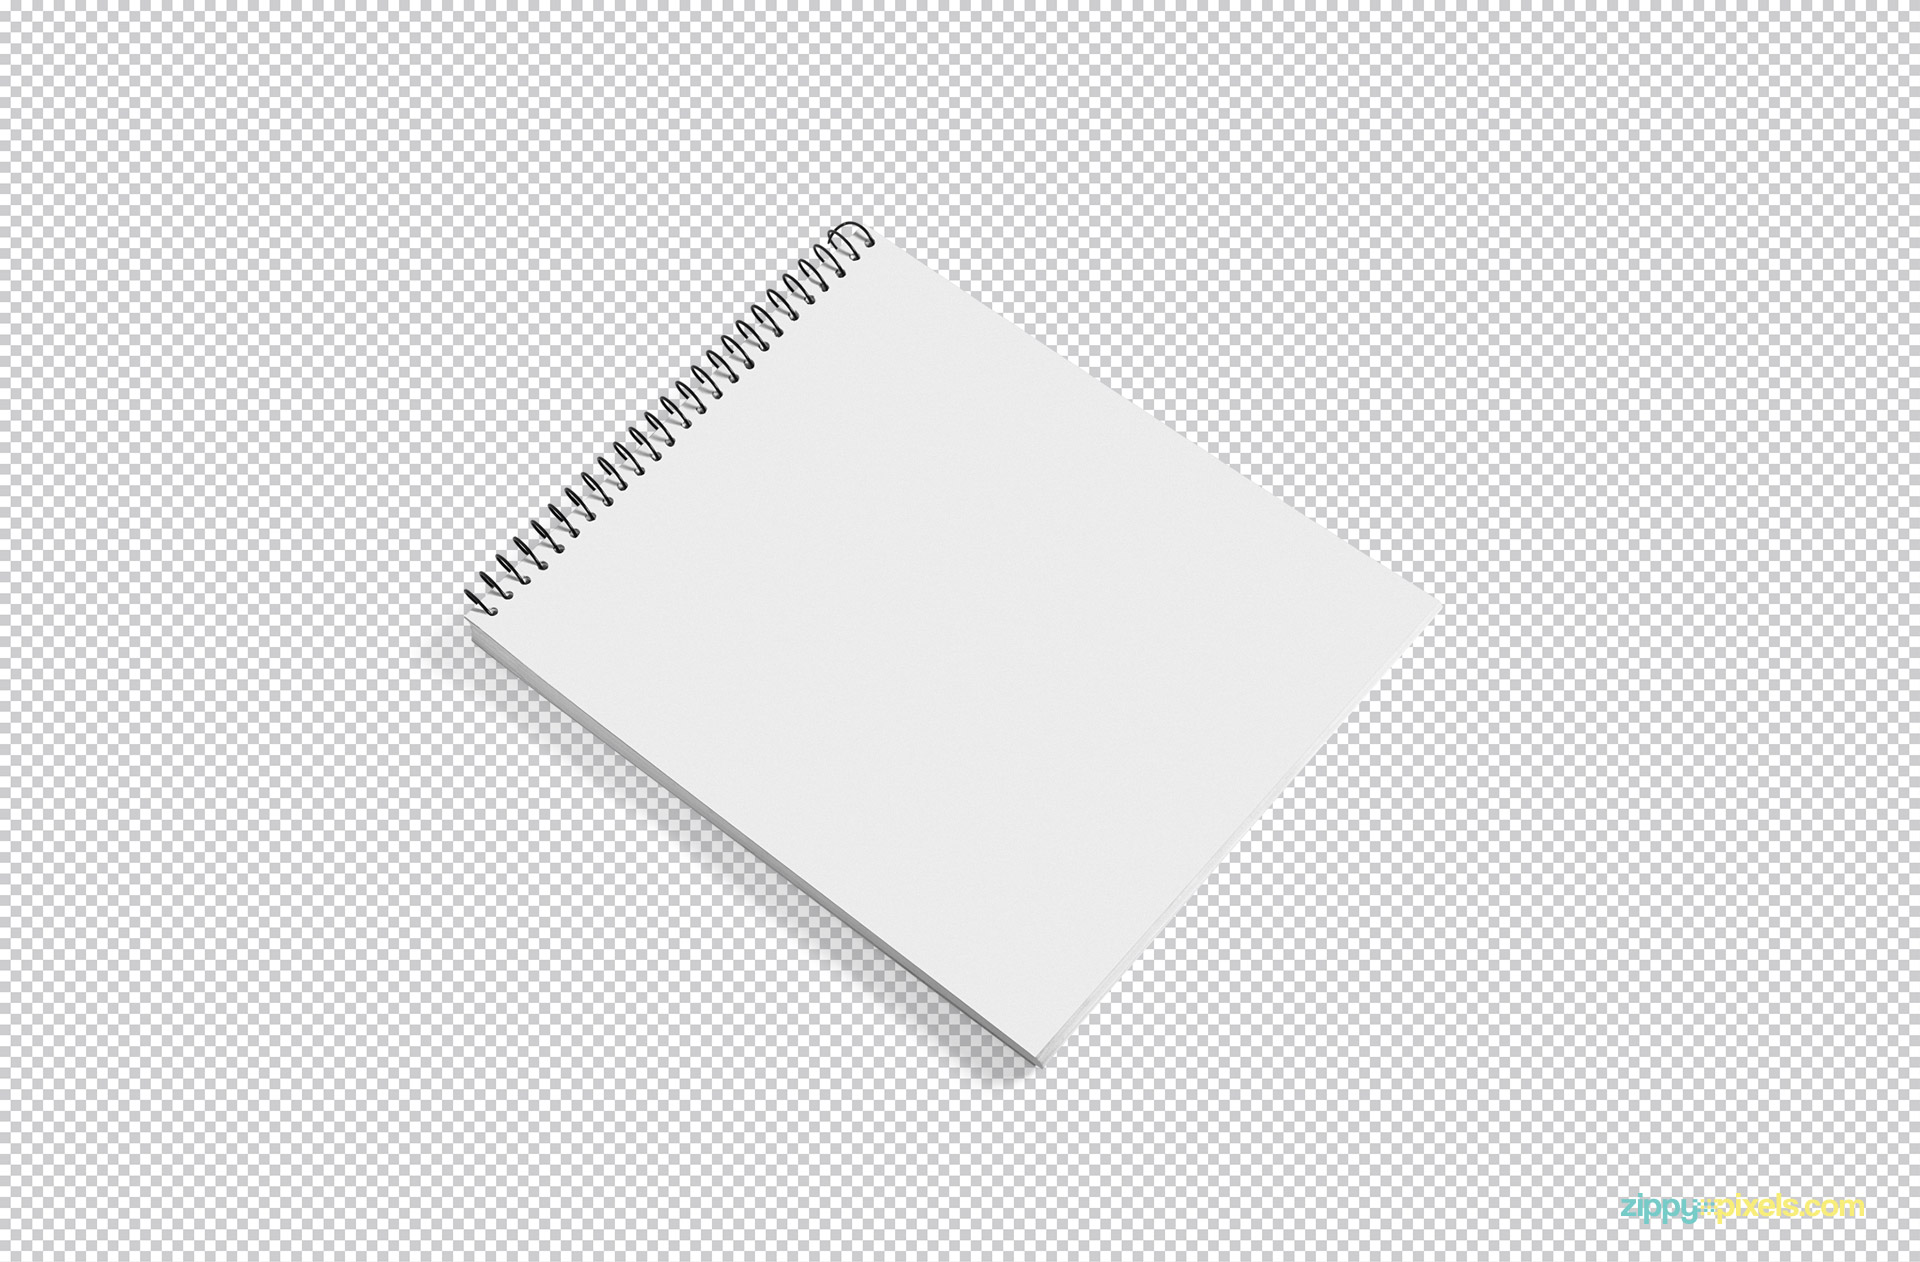 Use Adobe Photoshop to edit this free notepad mockup as per your liking.